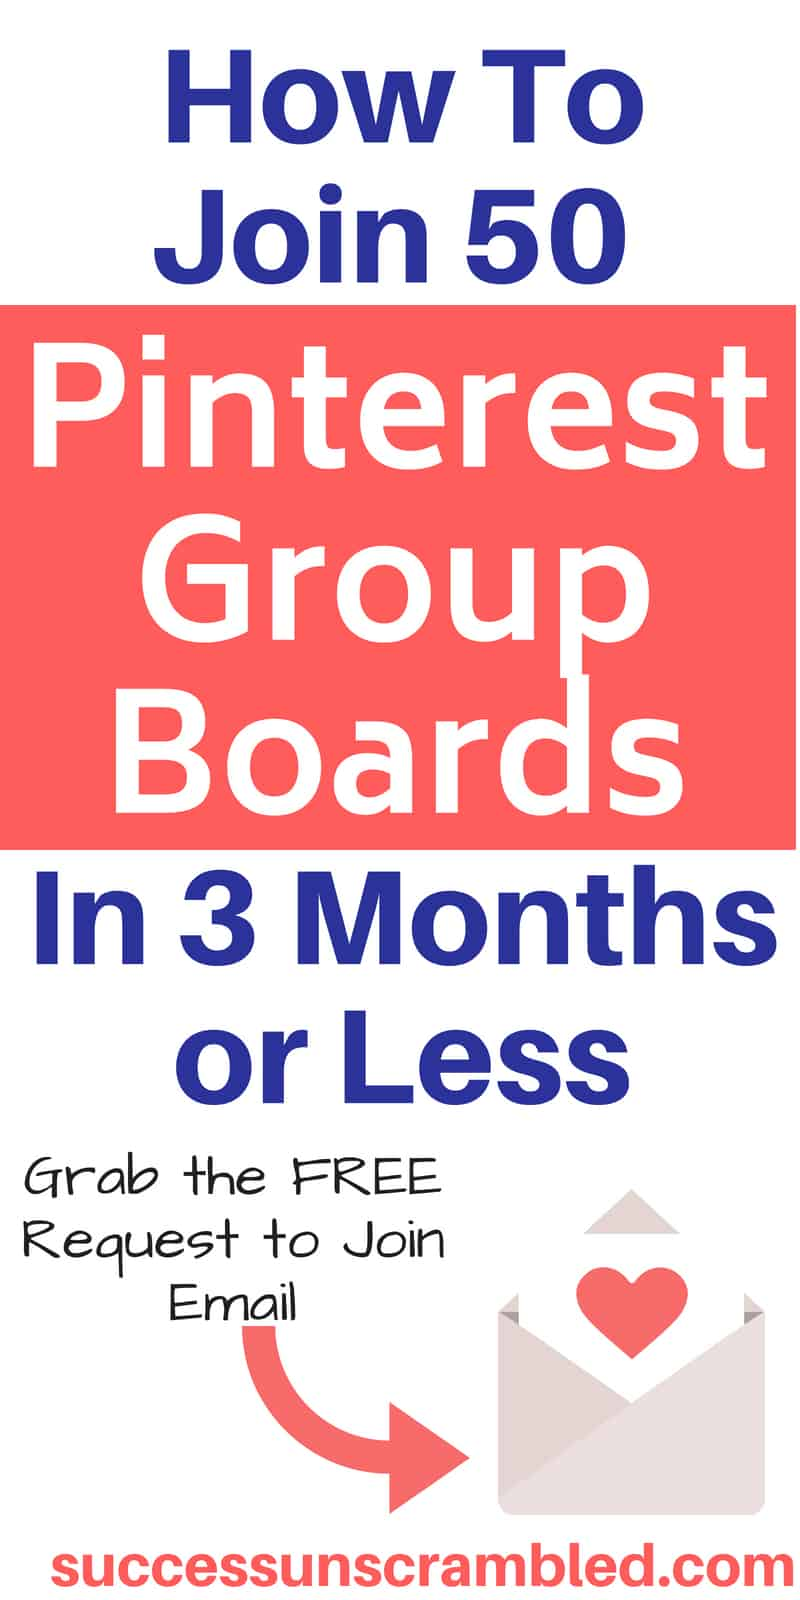 How To Join 50 Pinterest Group Boards in 3 Months or Less